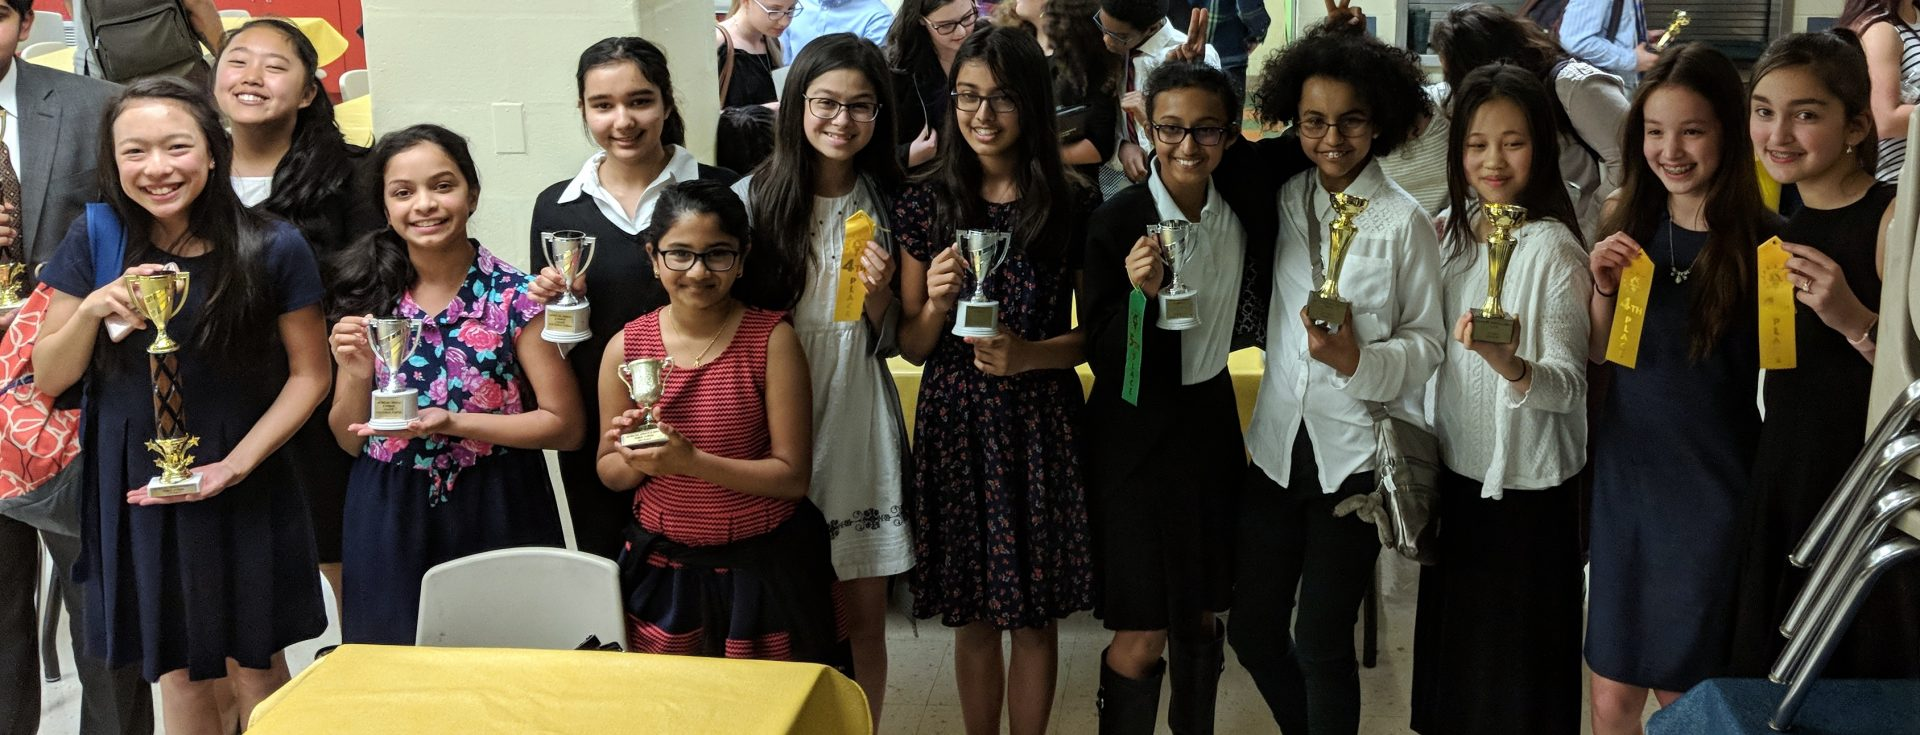 April 2018: Debate Team Win